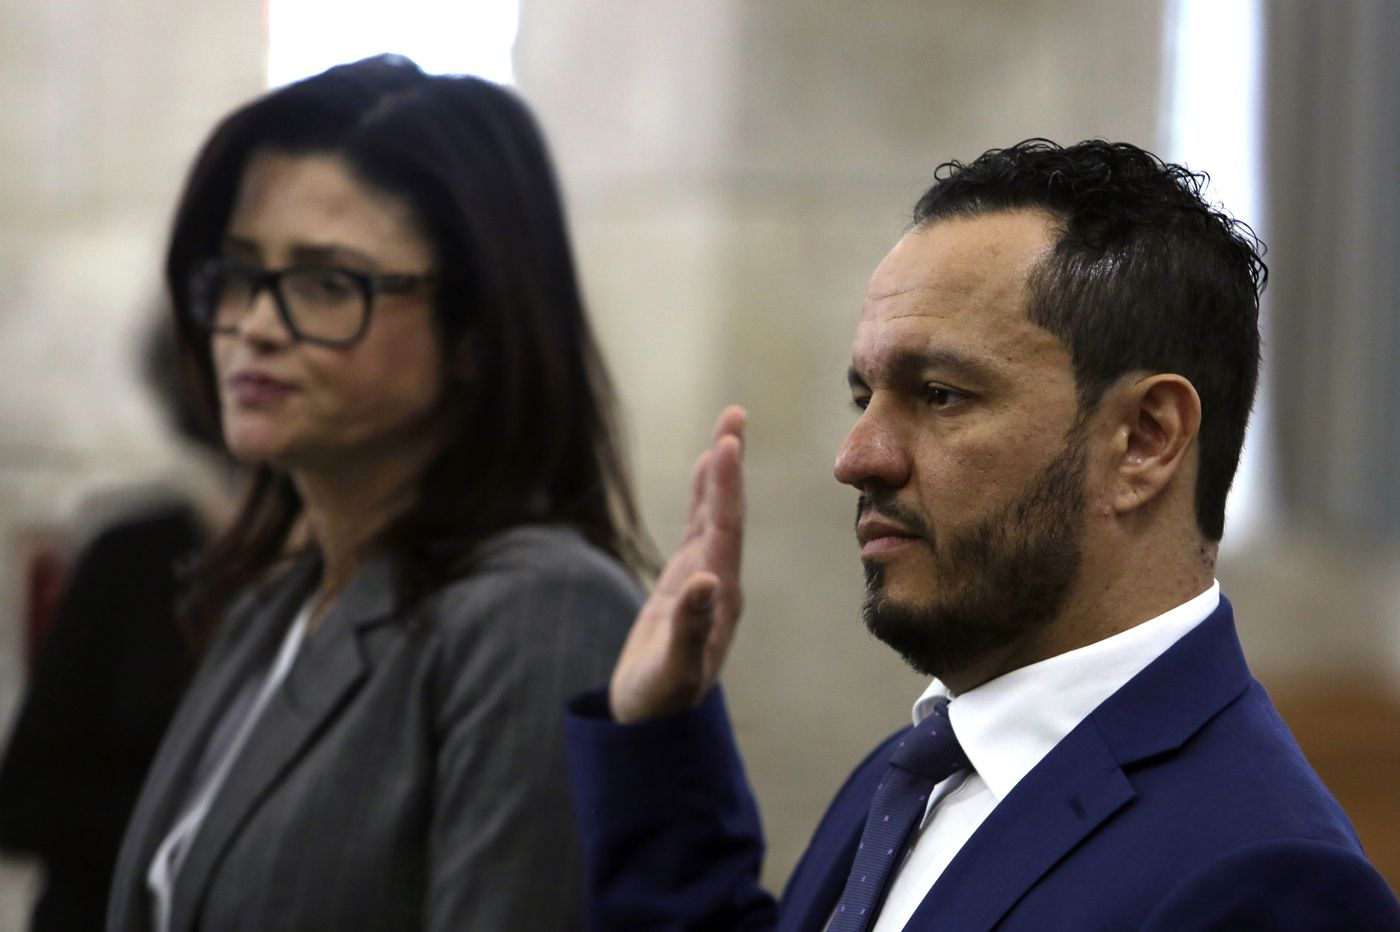 Al Alvarez, ex-Murphy staffer accused of sexual assault, says he was 'falsely accused'